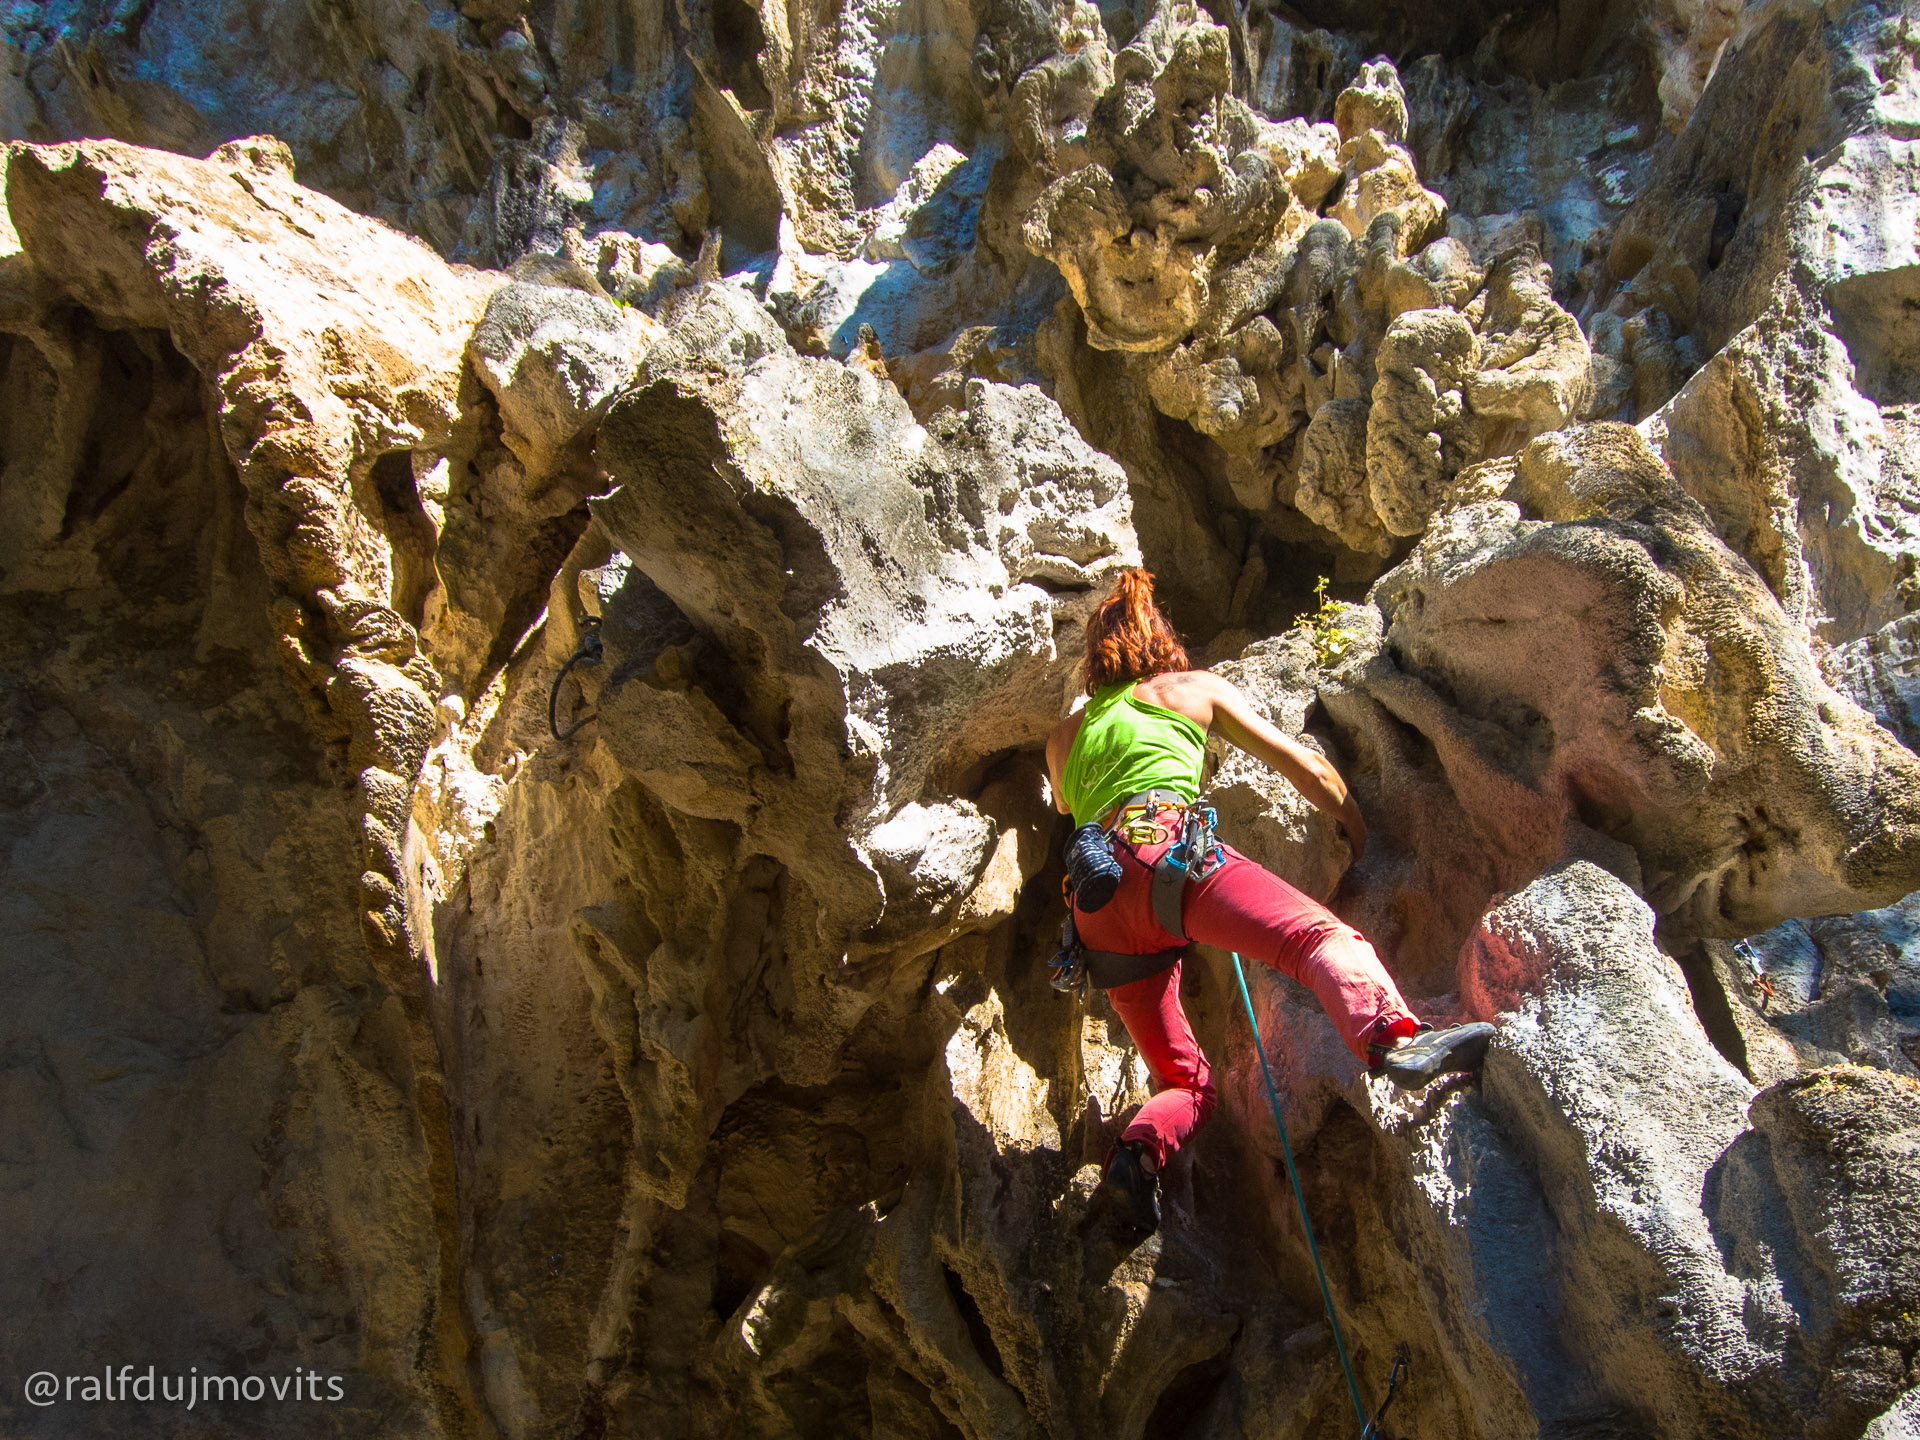 Even the 5.9 routes are wildly overhanging!